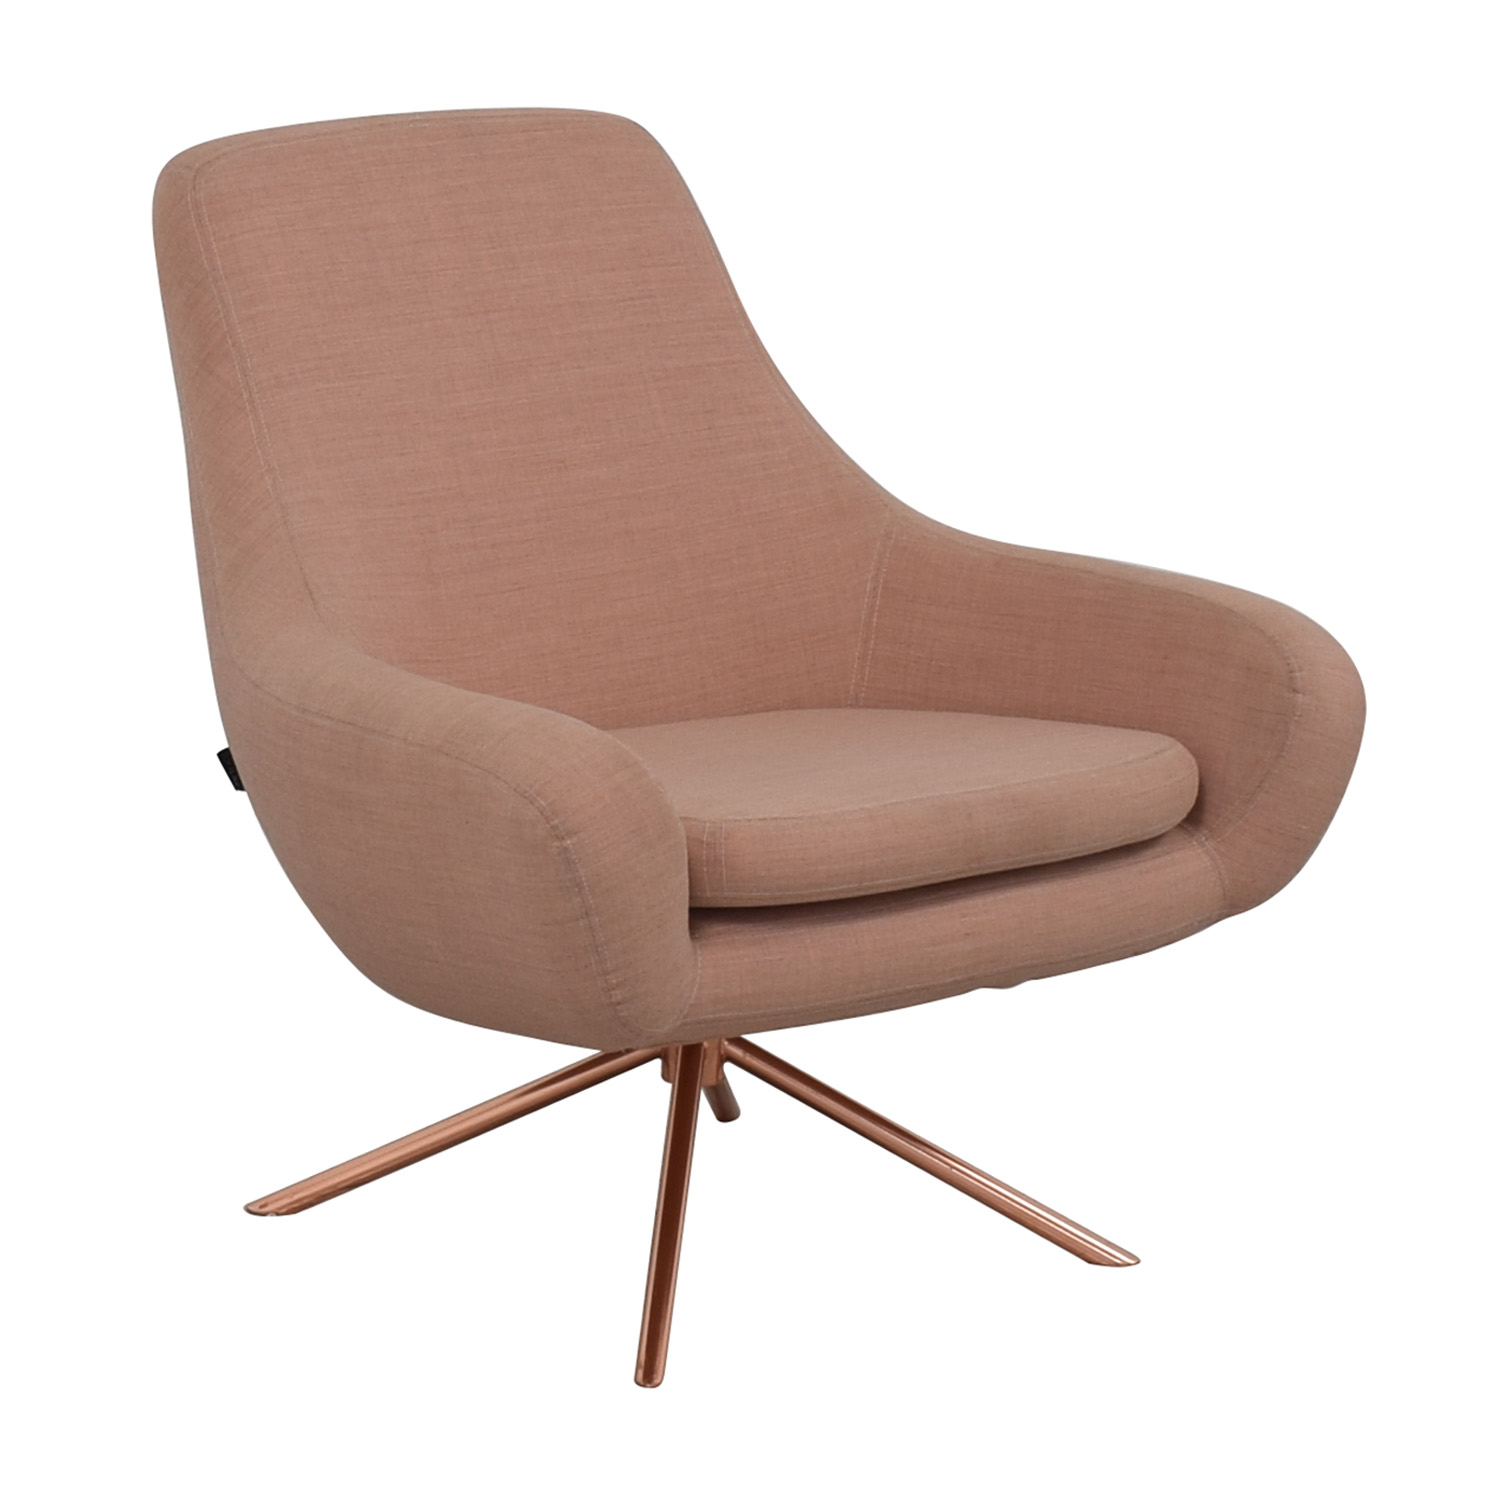 Stupendous 68 Off Softline Softline Noomi Swivel Lounge Chair Chairs Pdpeps Interior Chair Design Pdpepsorg